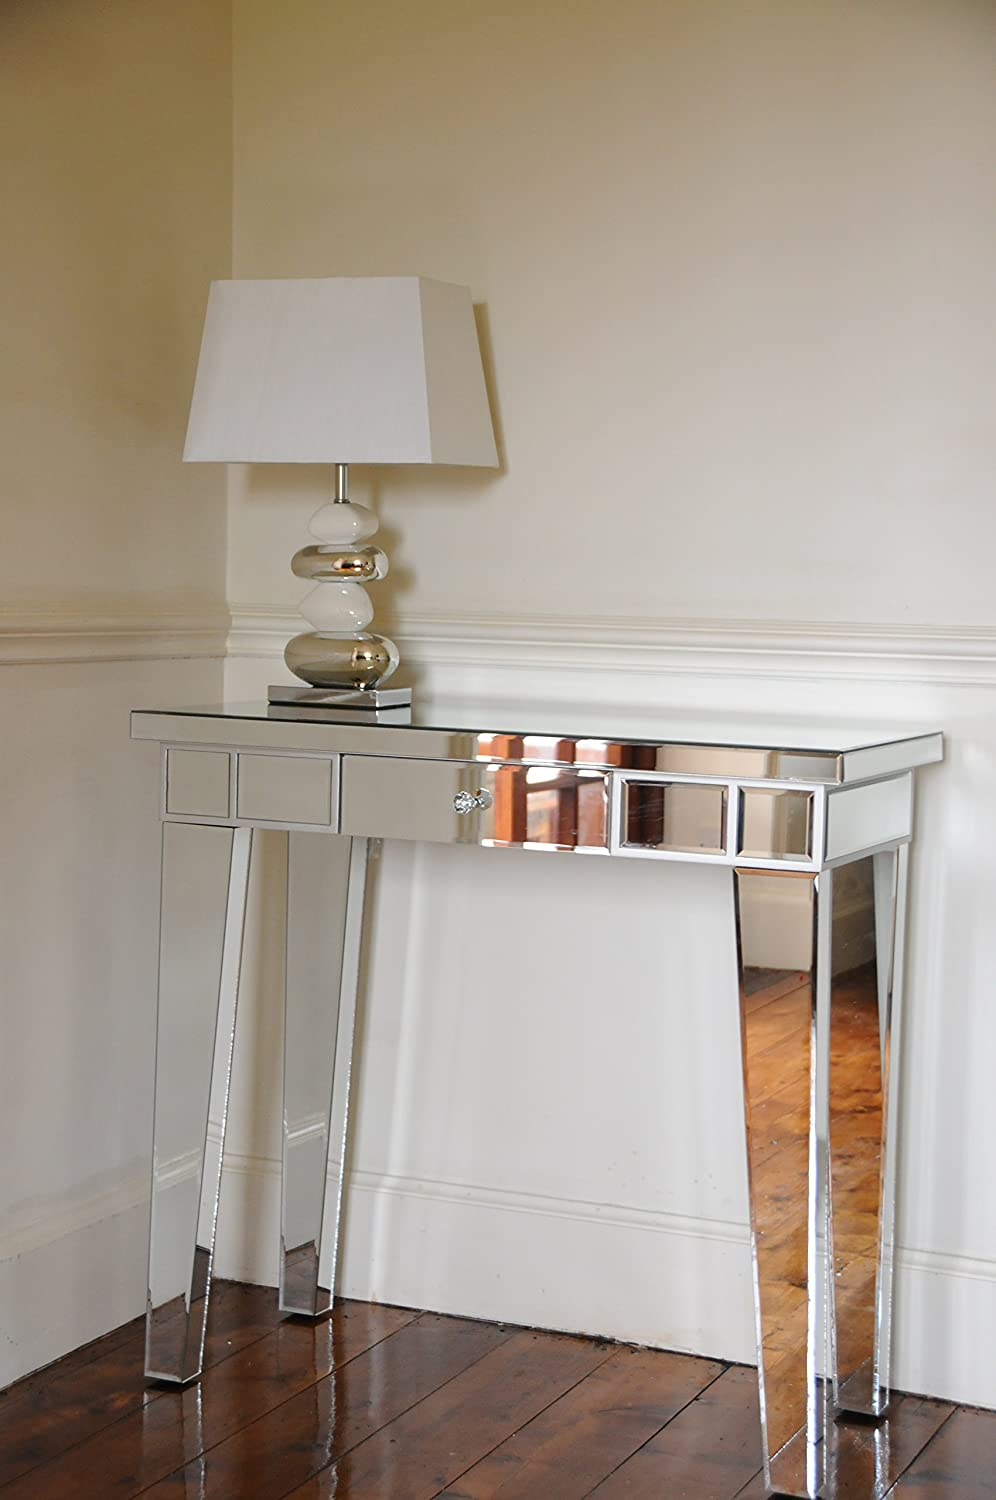 Mirrored Furniture Living Room Foxhunter Mirrored Furniture Glass Table X Console Desk Bedroom